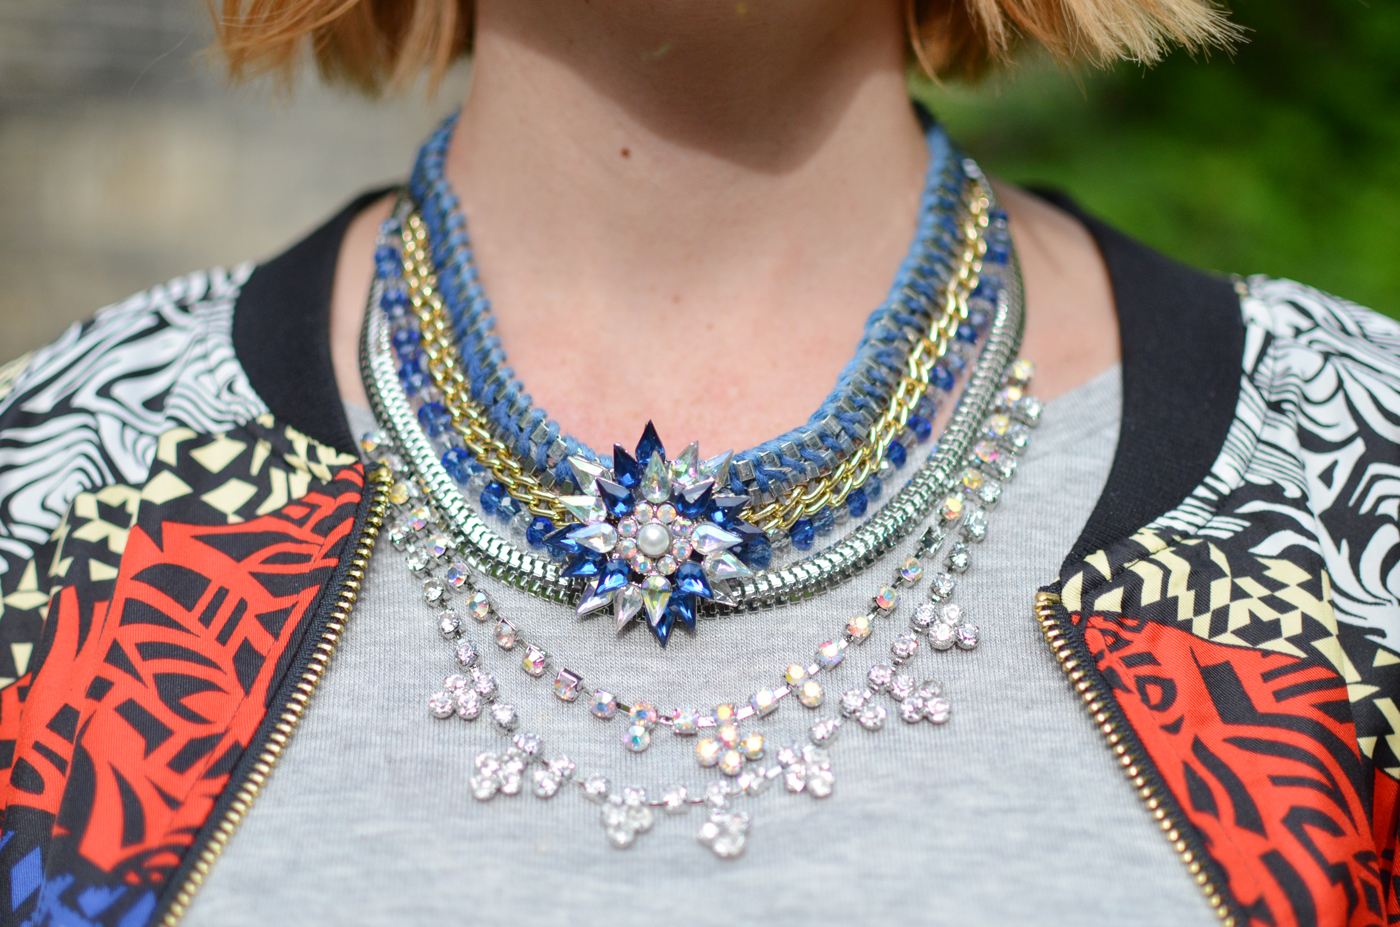 LOOK-AGAIN-necklace